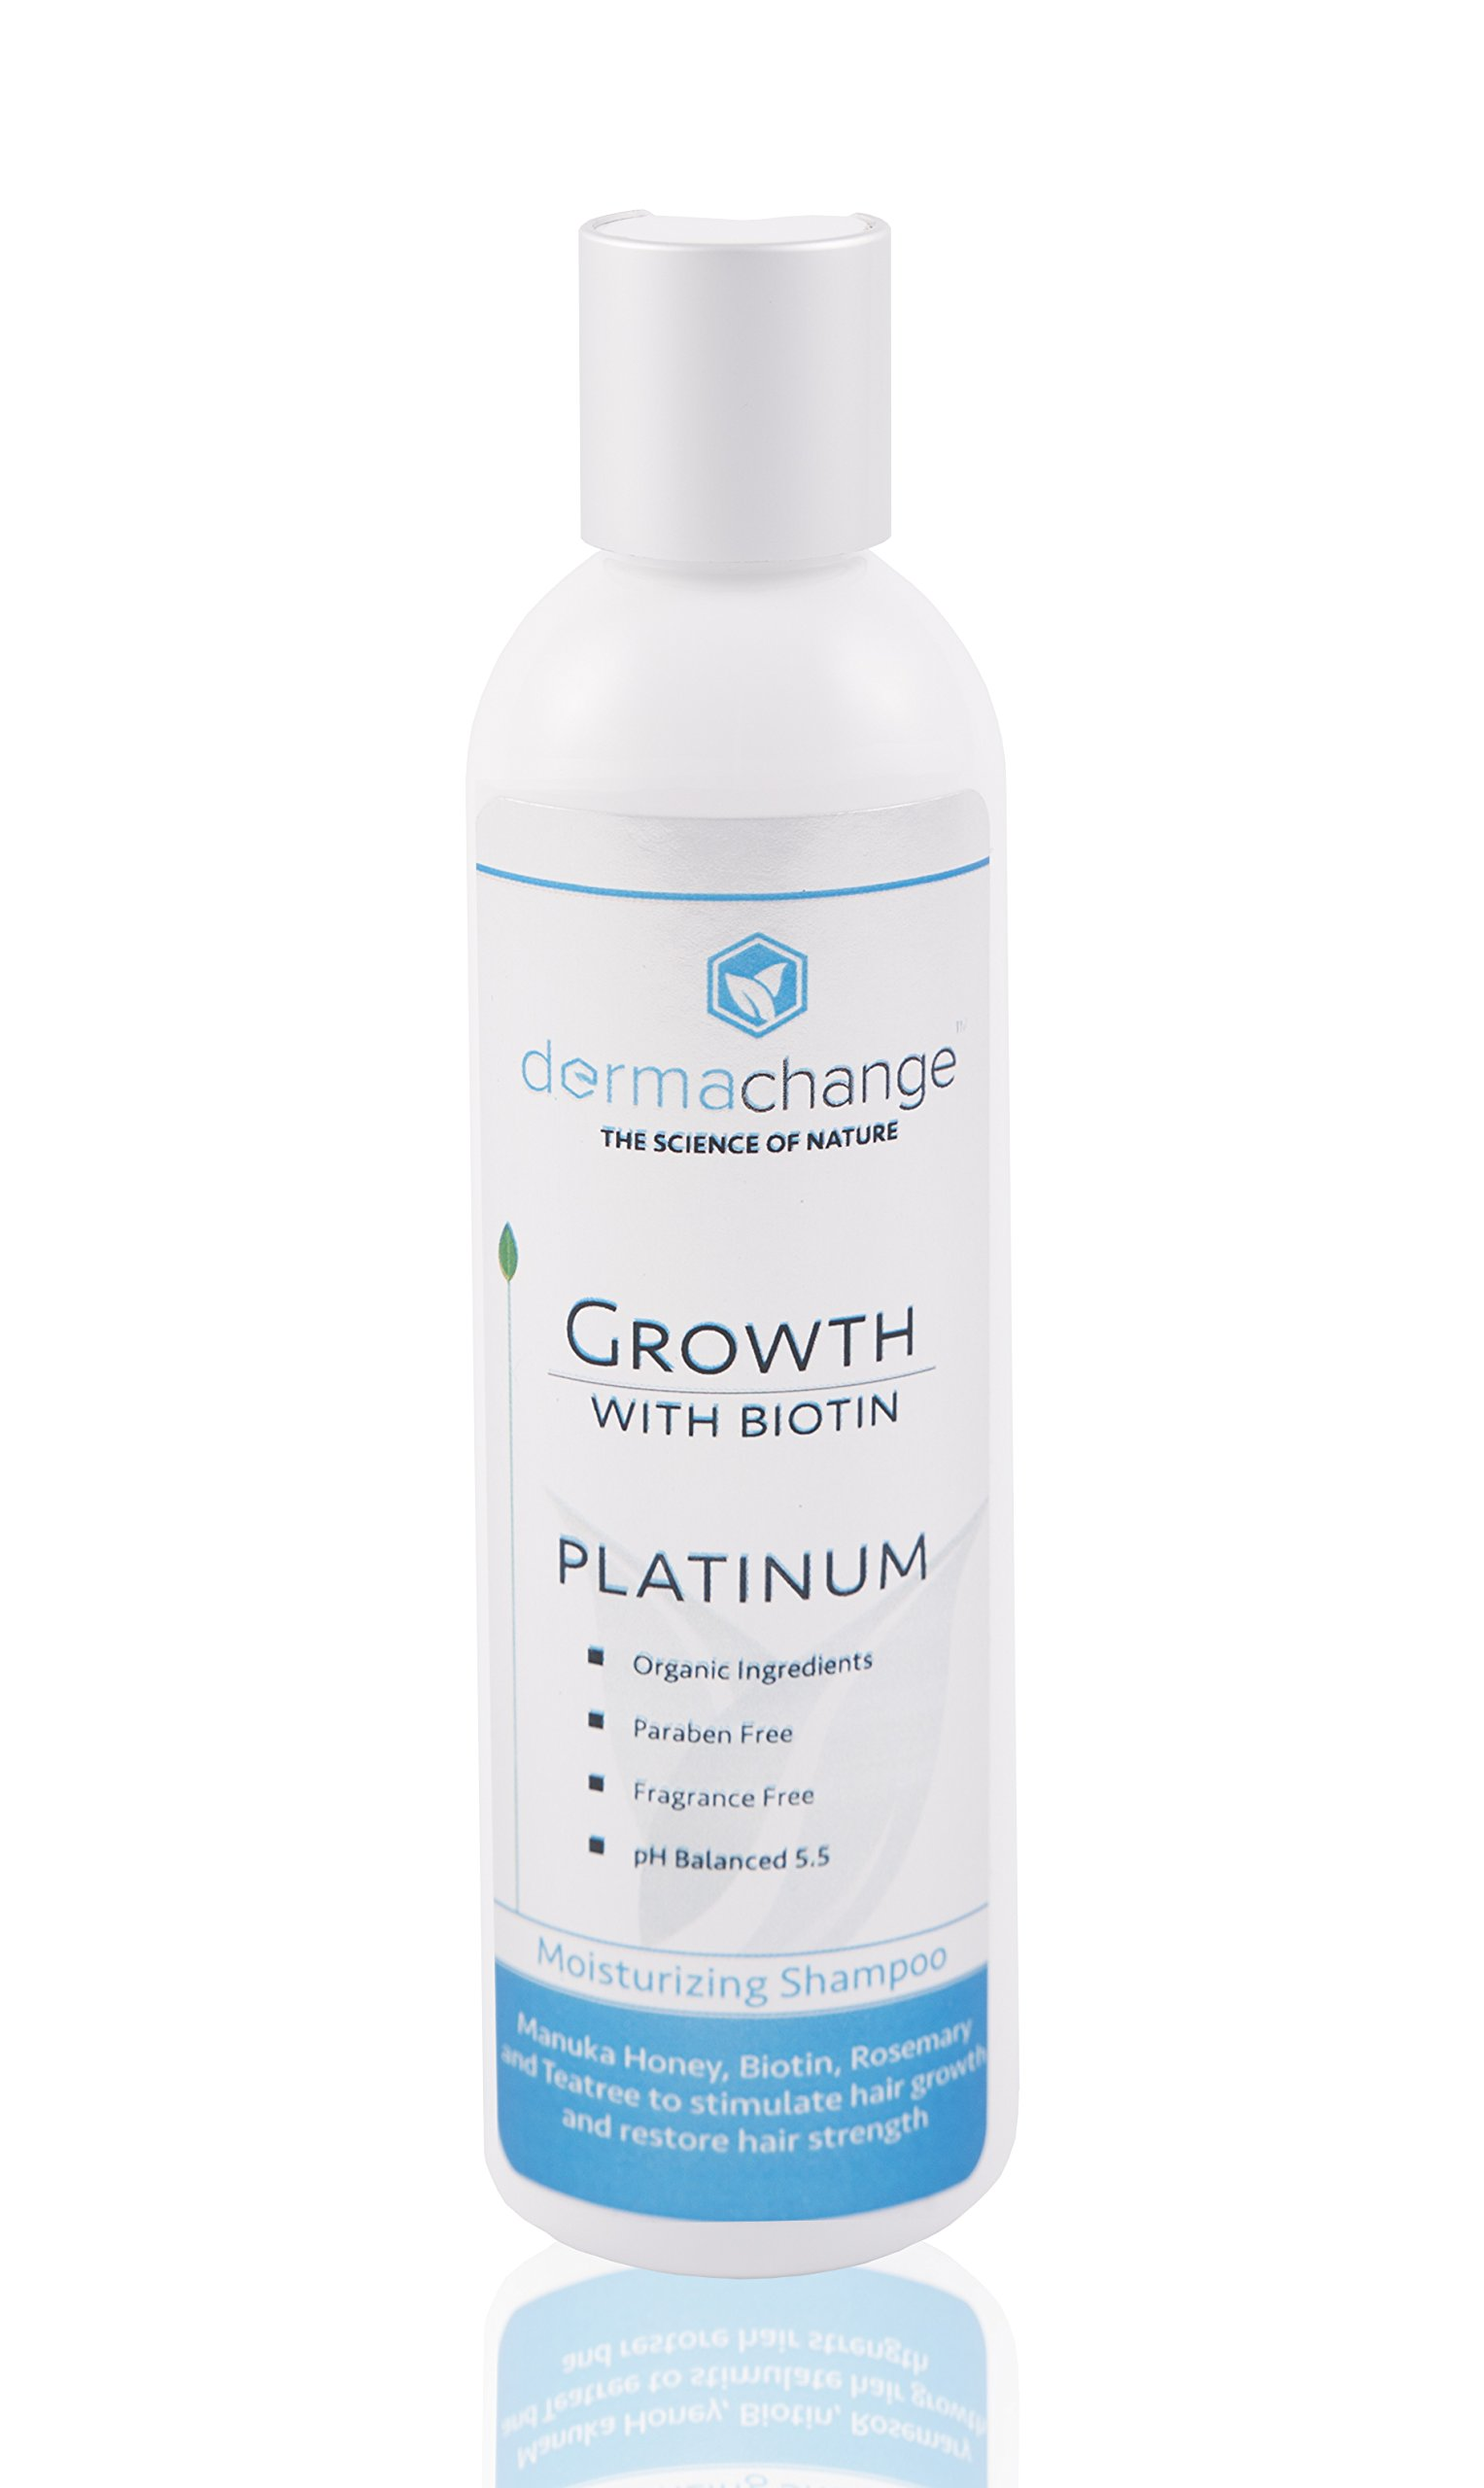 DermaChange Platinum Hair Growth Moisturizing Shampoo - With Argan Oil, Biotin & Tea Tree Extract - Supports Hair Regrowth - Hair Loss Treatments (16 oz) - Made in USA